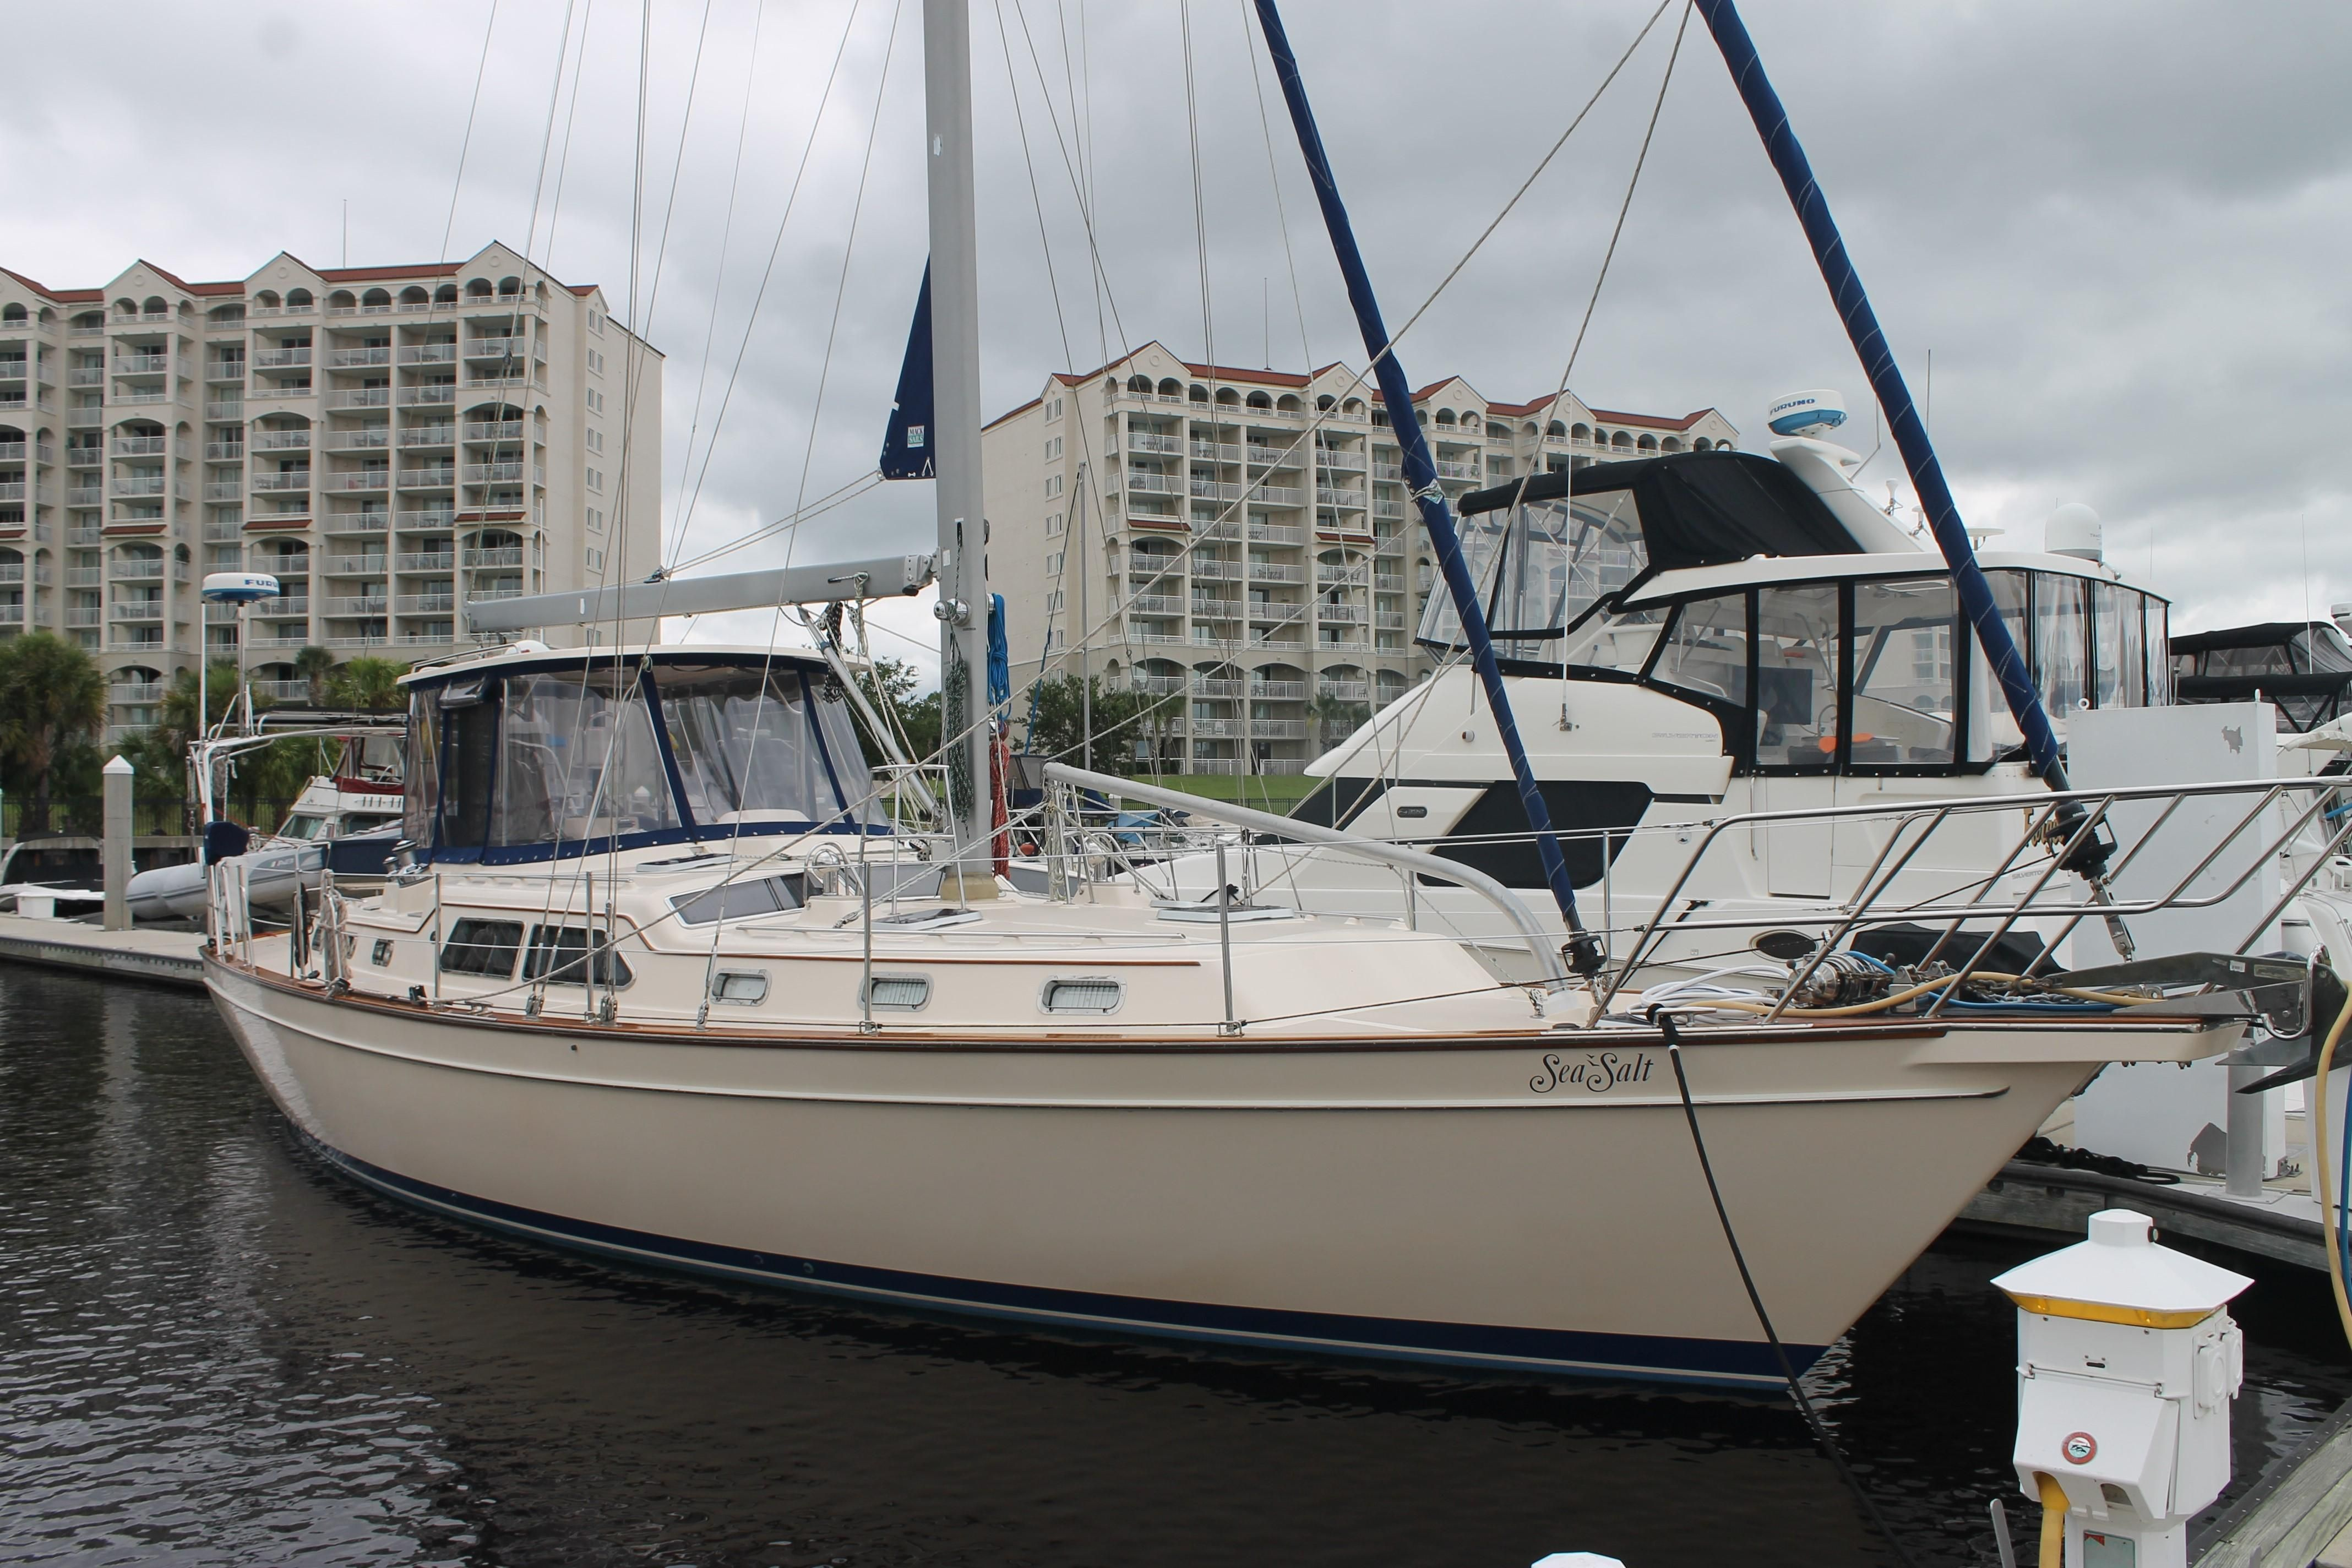 Island Packet Sail Boat For Sale